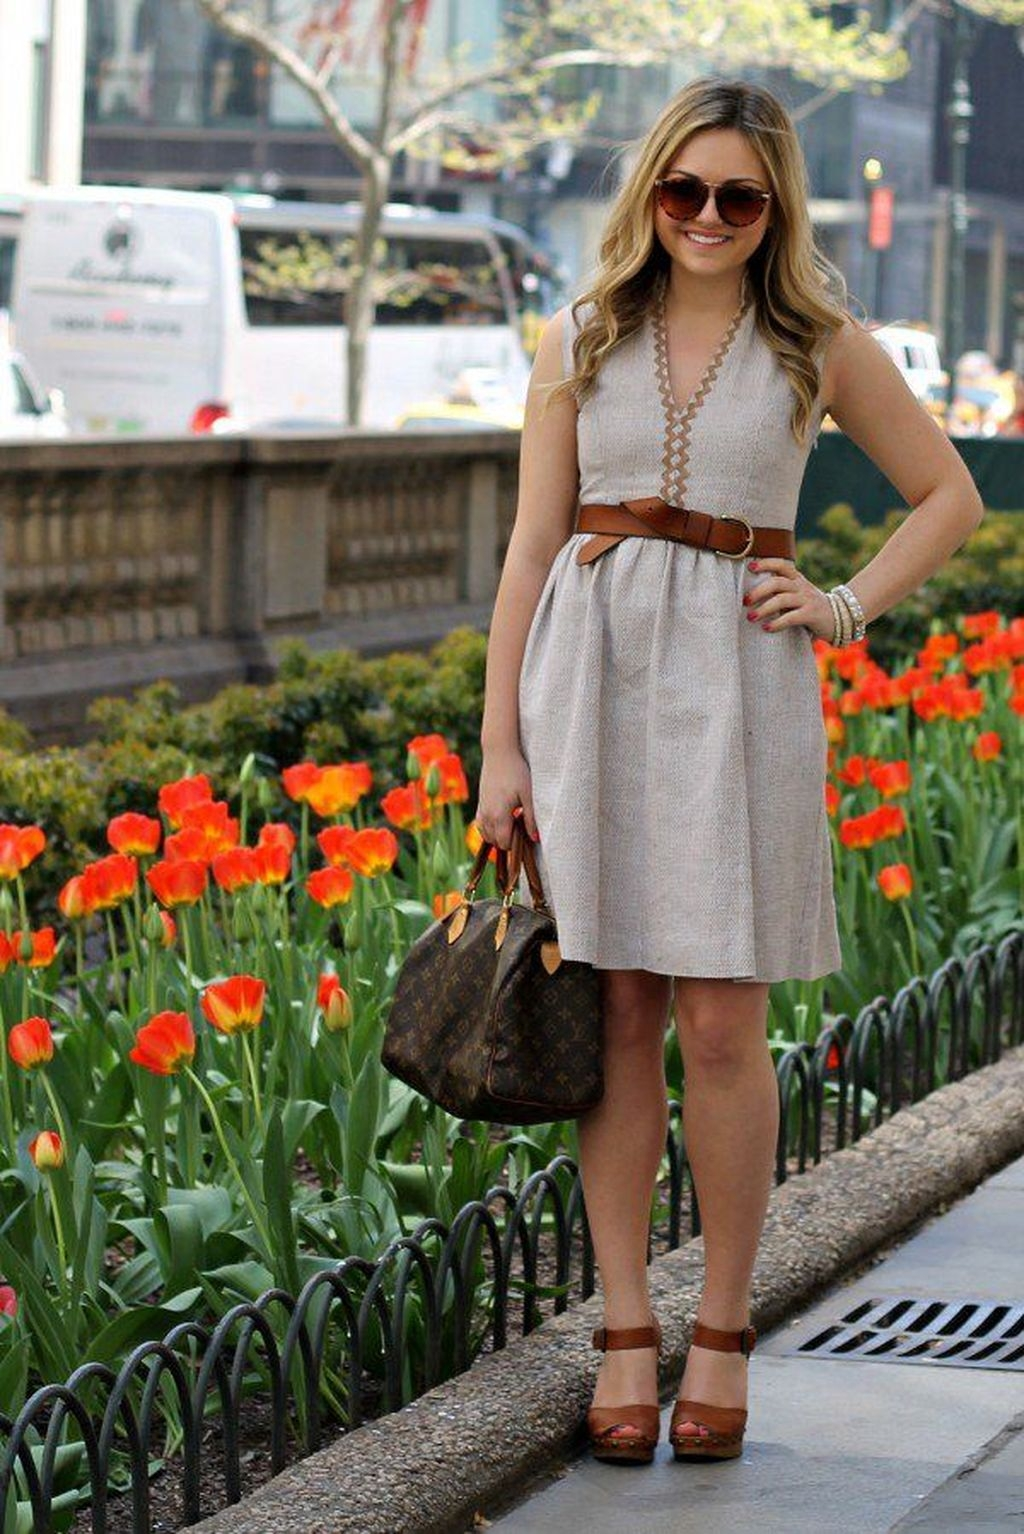 Work Outfit Ideas For Summer